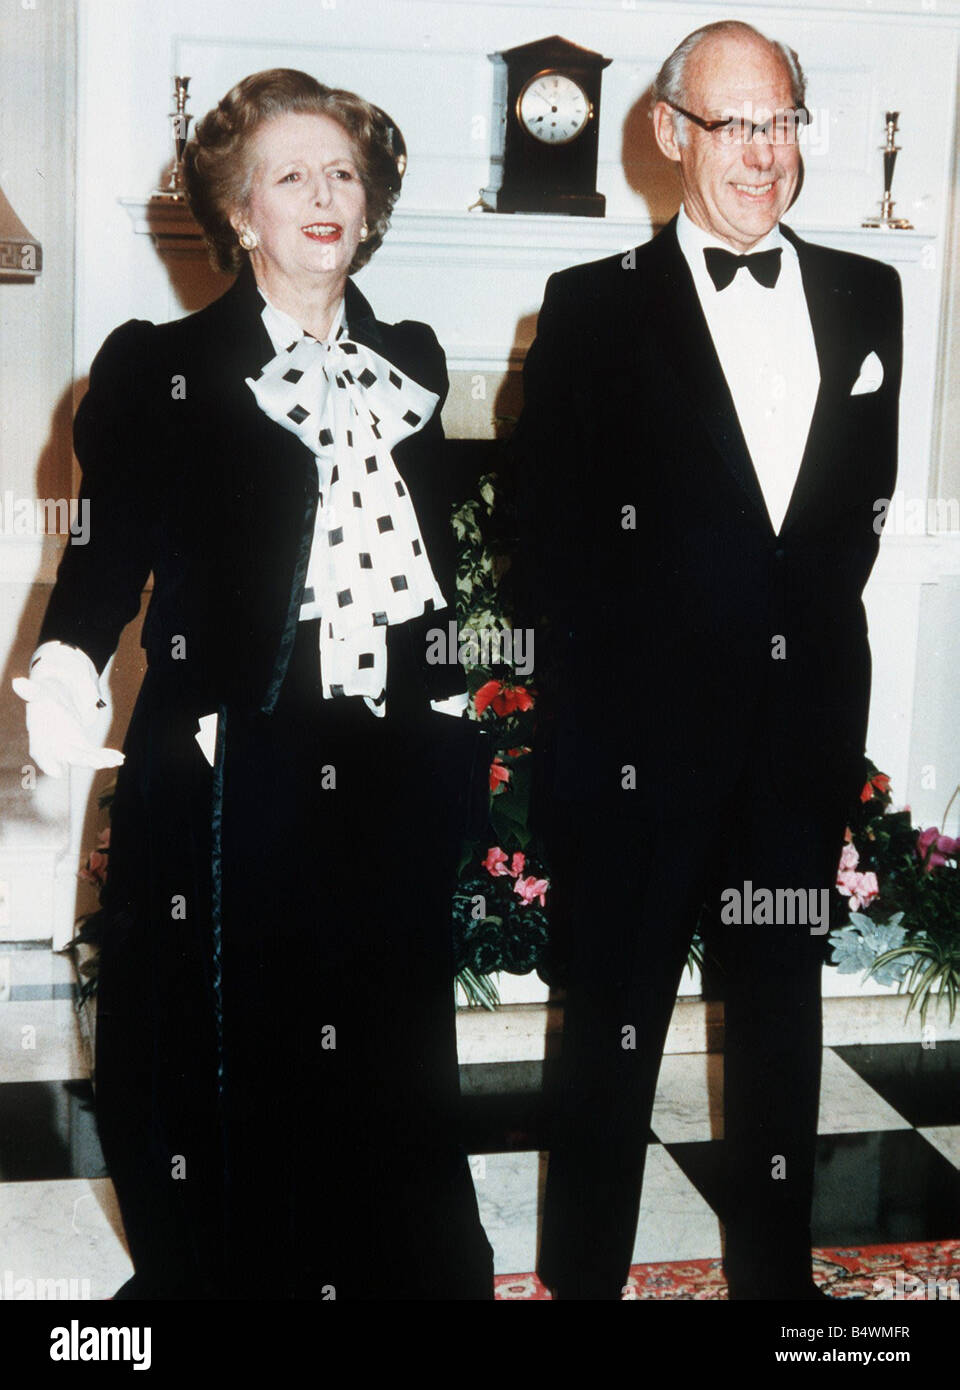 Margeret Thatcher with husband Denis at the 250th anniversary of Number 10 Downing Street December 1985 - Stock Image